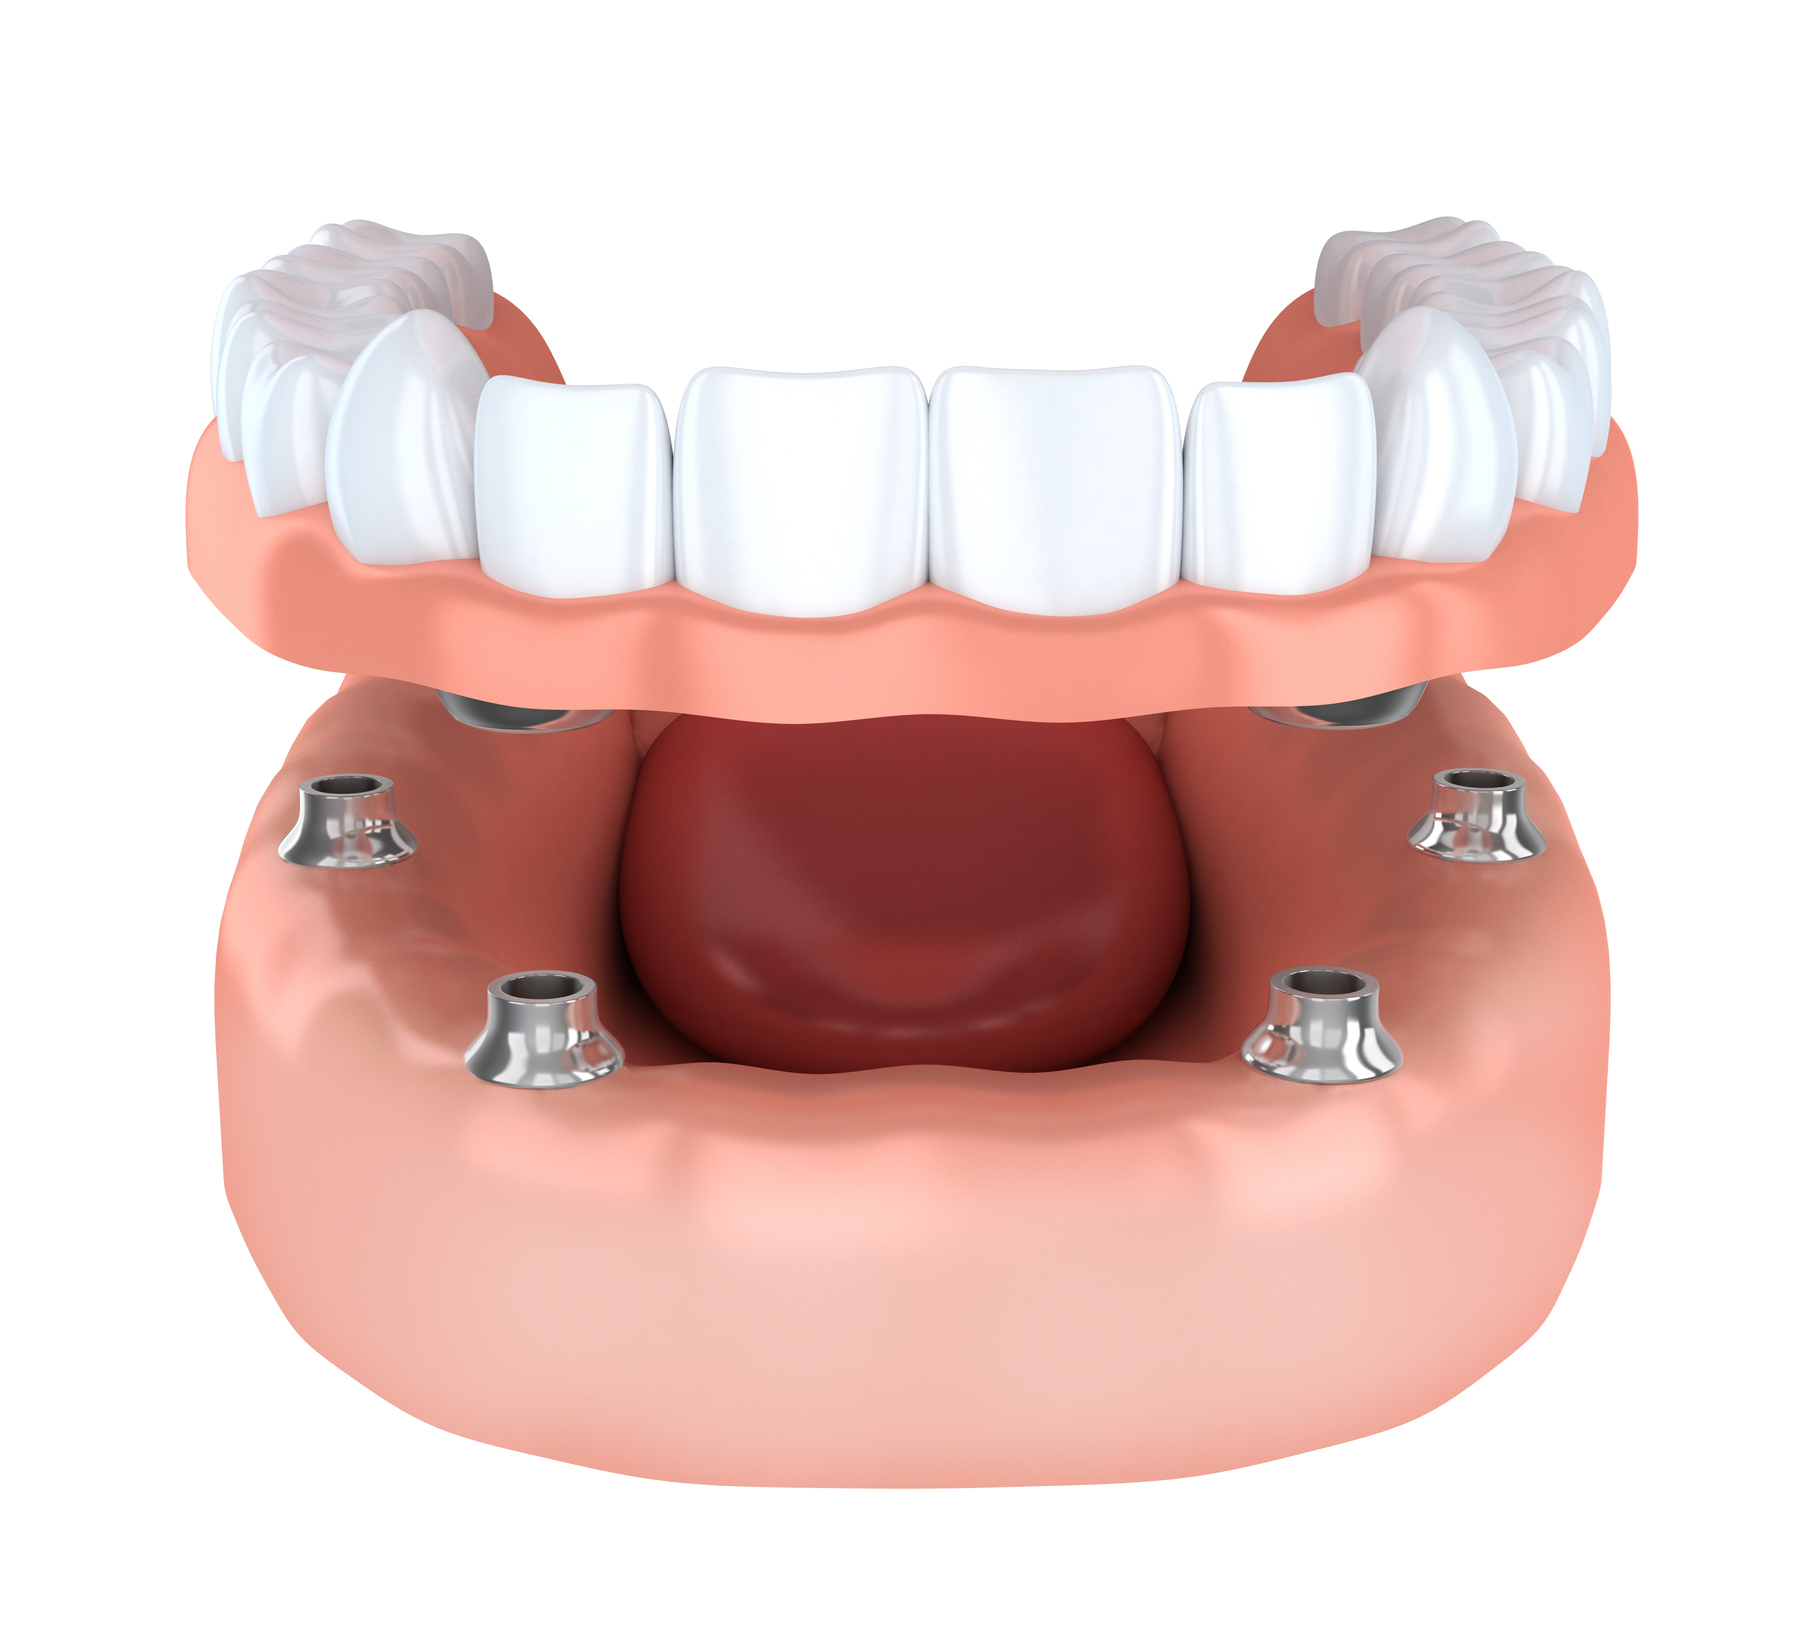 Watergate Dental offers implant-supported prosthetics